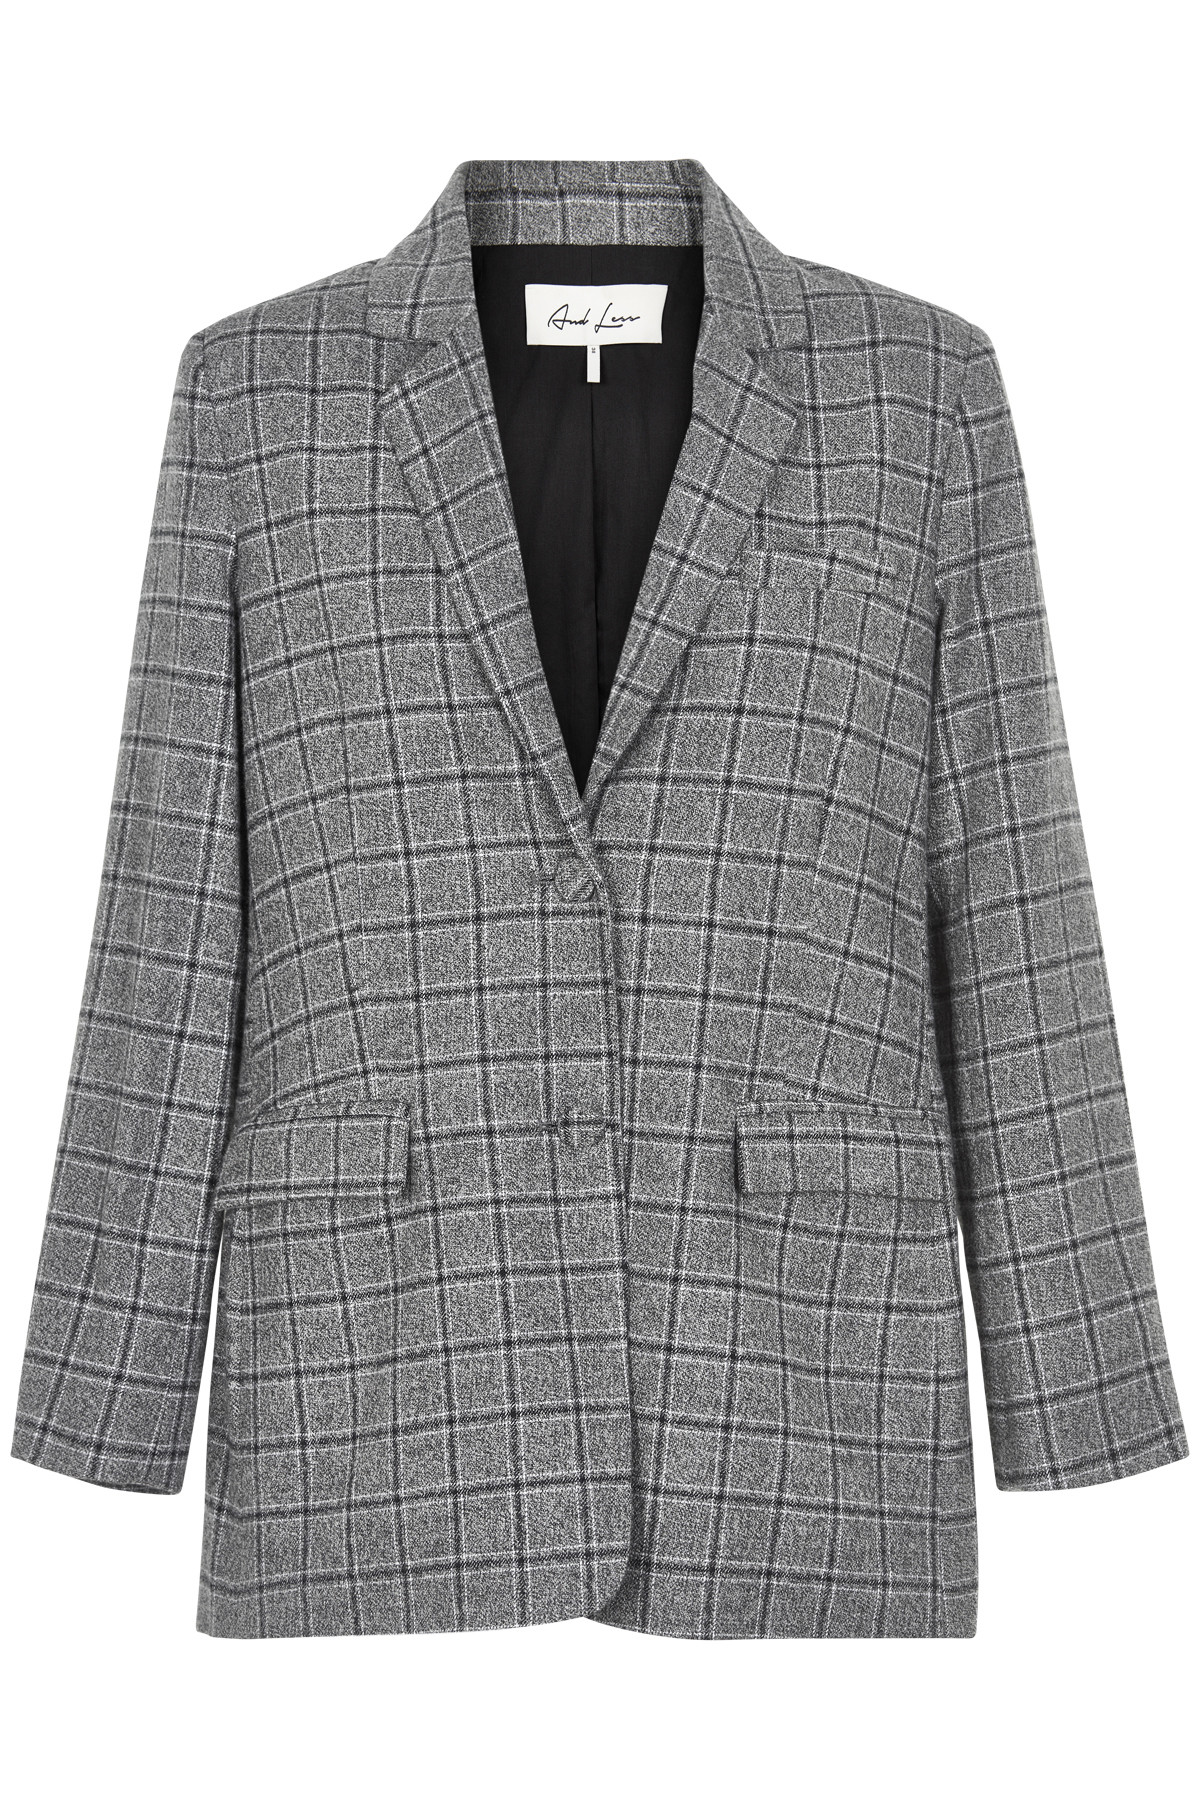 Image of   AND LESS CHARLOTI BLAZER 5119902 (Caviar Check, 38)